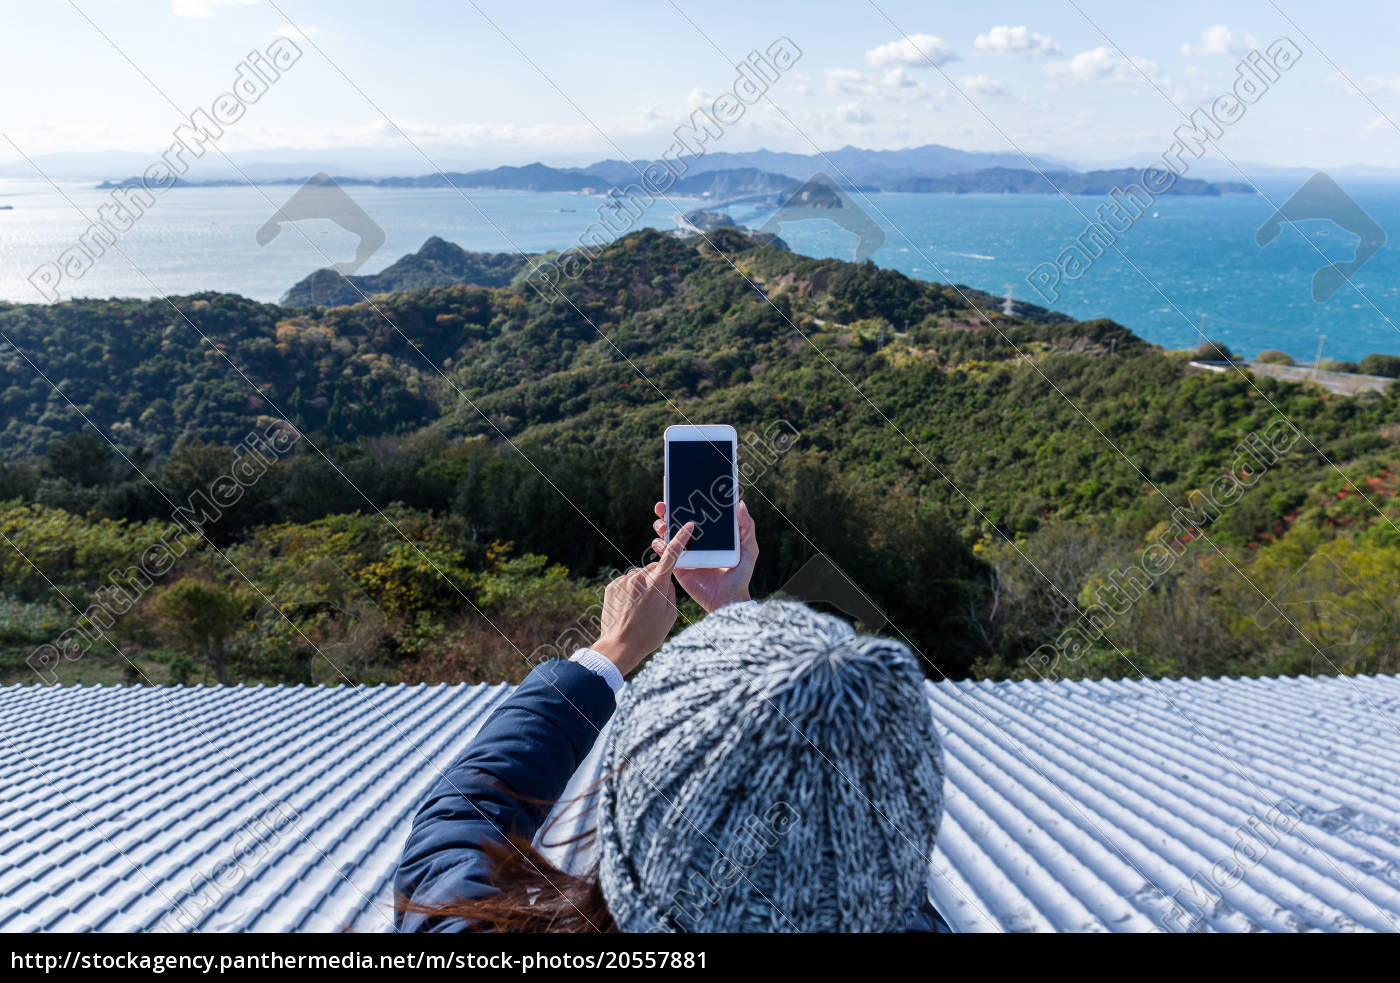 woman, using, cellphone, to, take, photo - 20557881